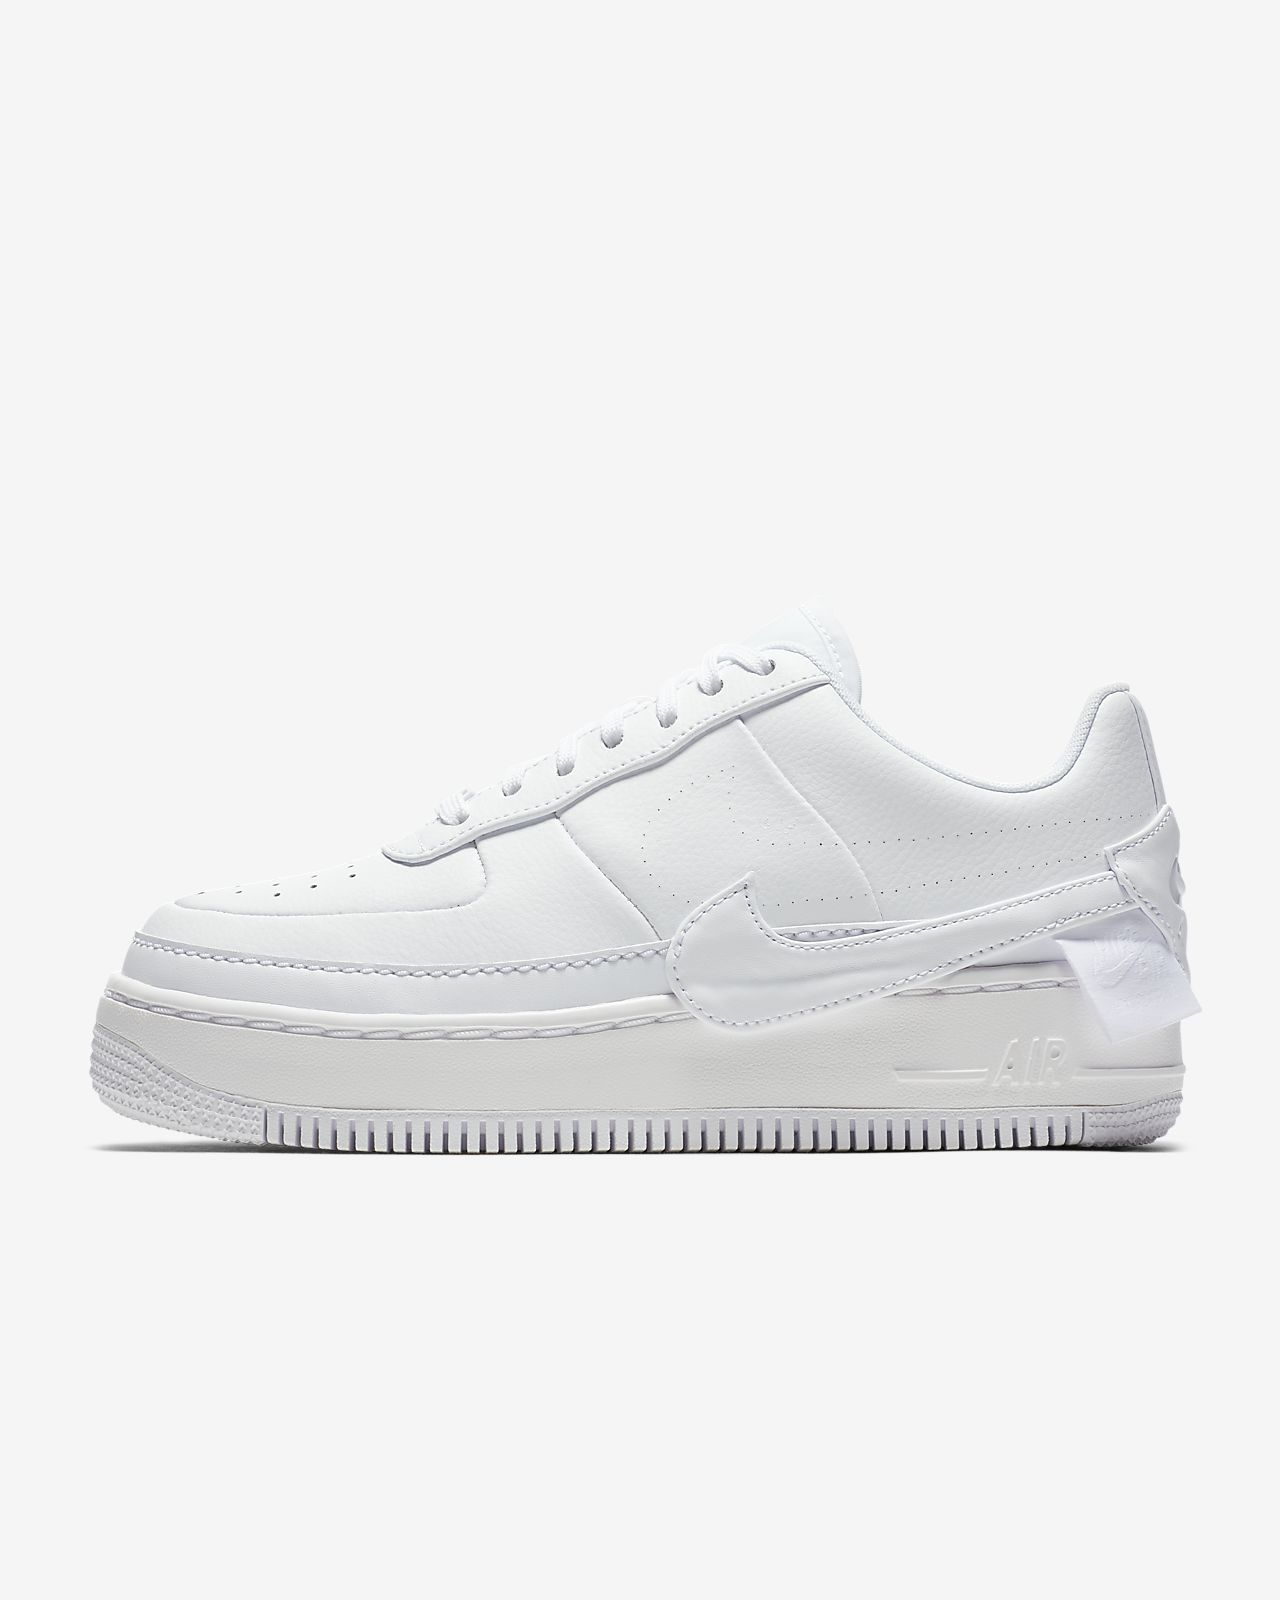 meilleur service f951d 21545 Nike Air Force 1 Jester XX Shoe